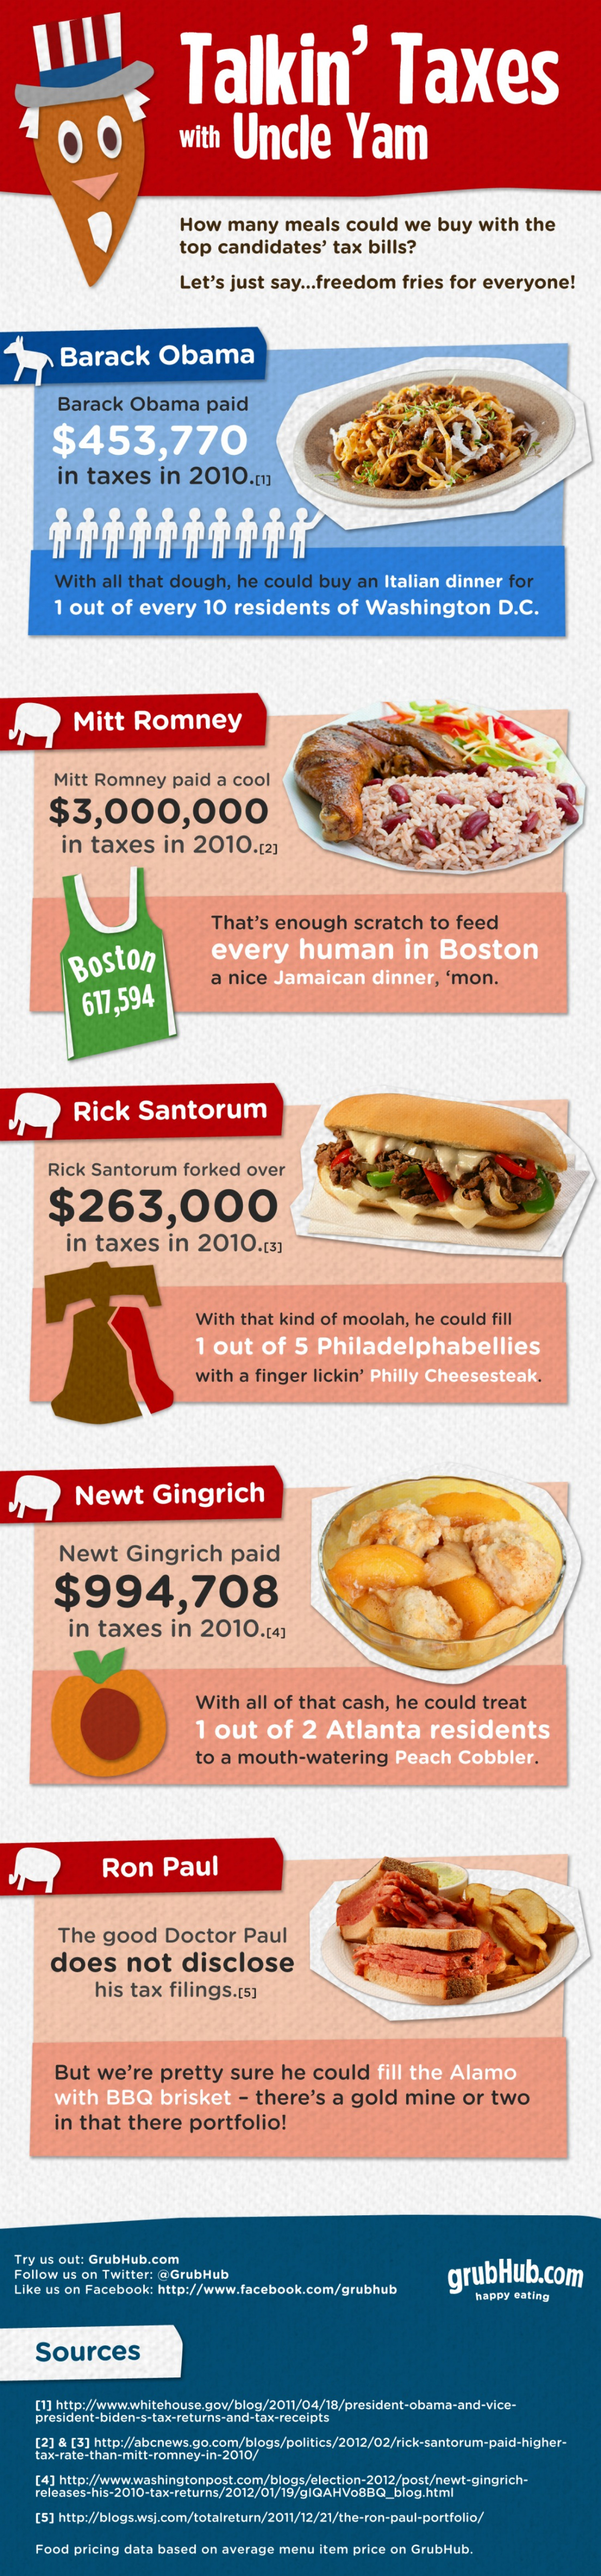 Talkin' Taxes with Uncle Yam Infographic